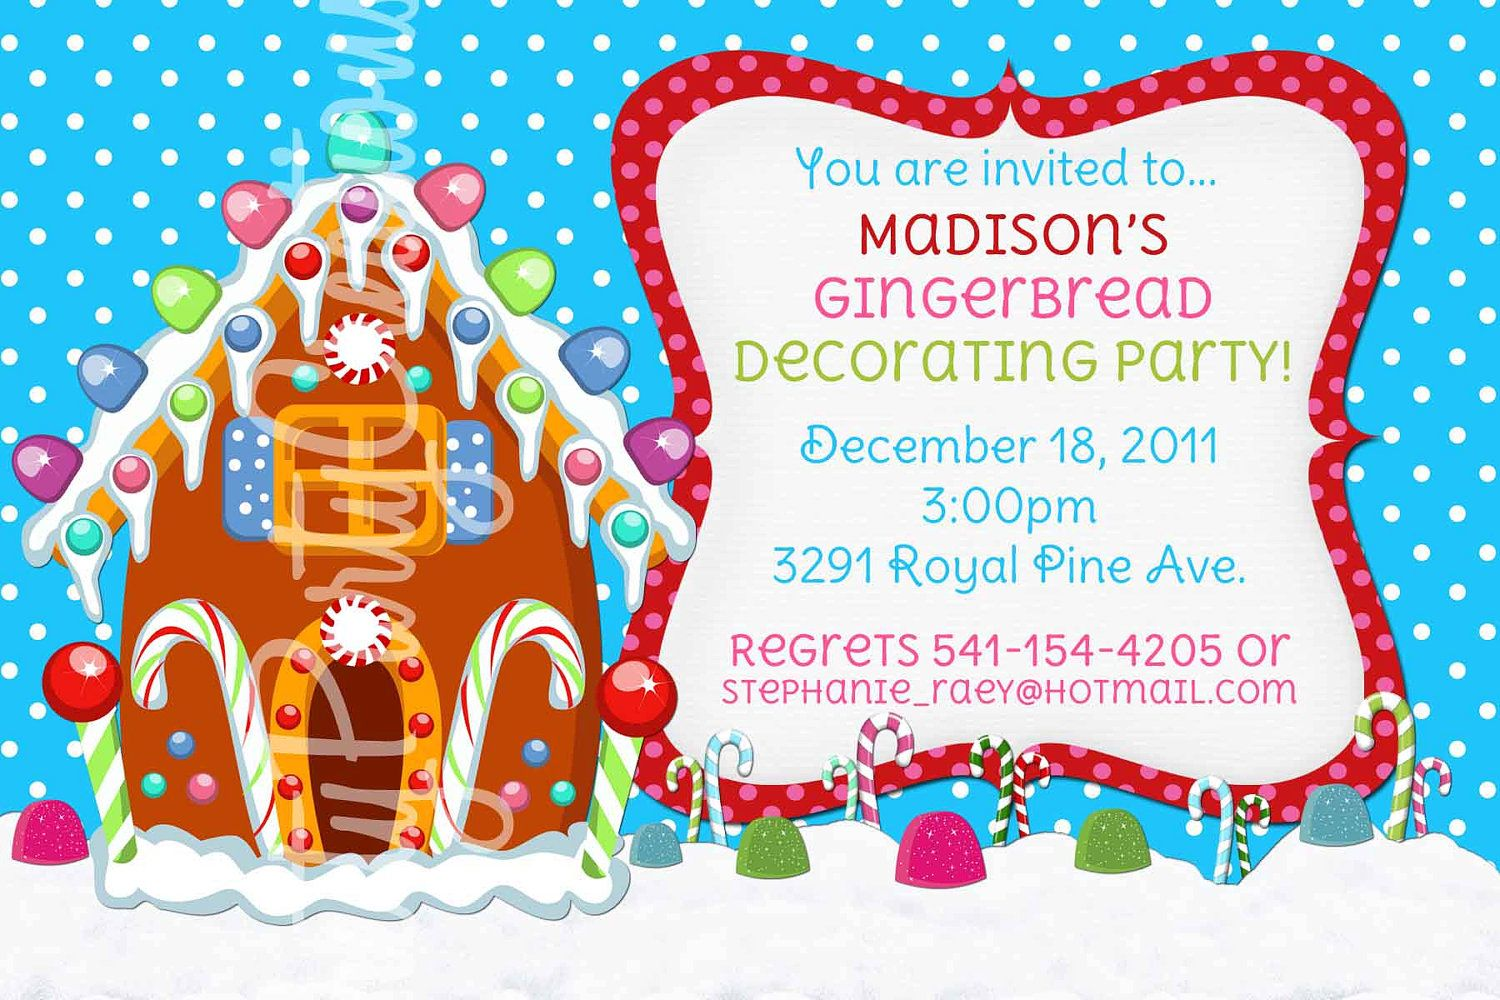 Gingerbread house invitation you print gingerbread house gingerbread house invitation you print gingerbread house parties gingerbread and merry filmwisefo Images